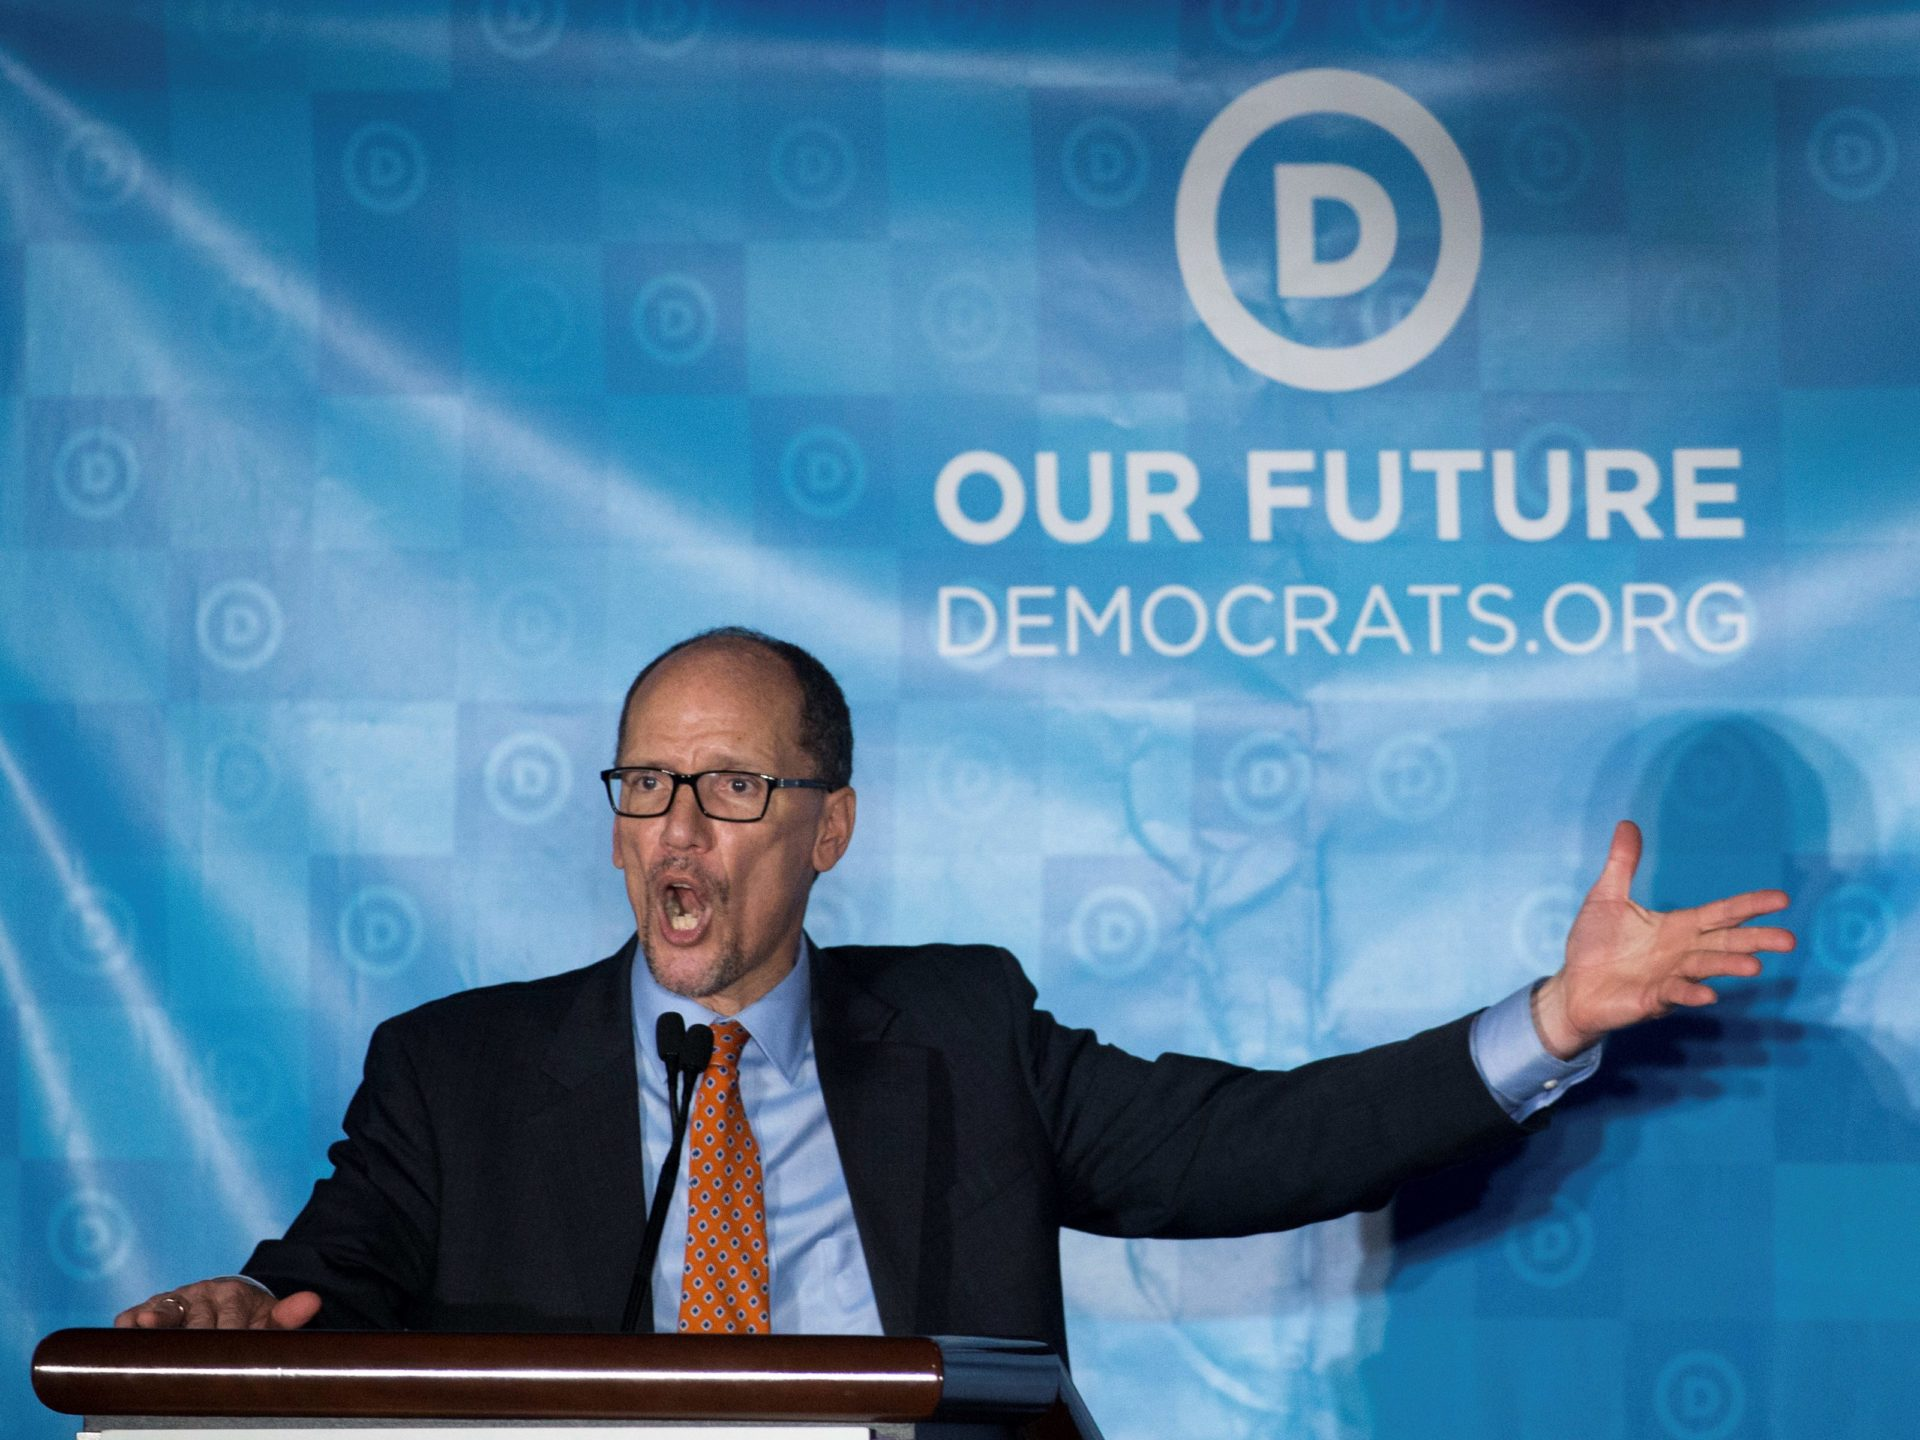 WaPo Calls Out Tom Perez for False Claim That DNC Broke Fundraising Records in January